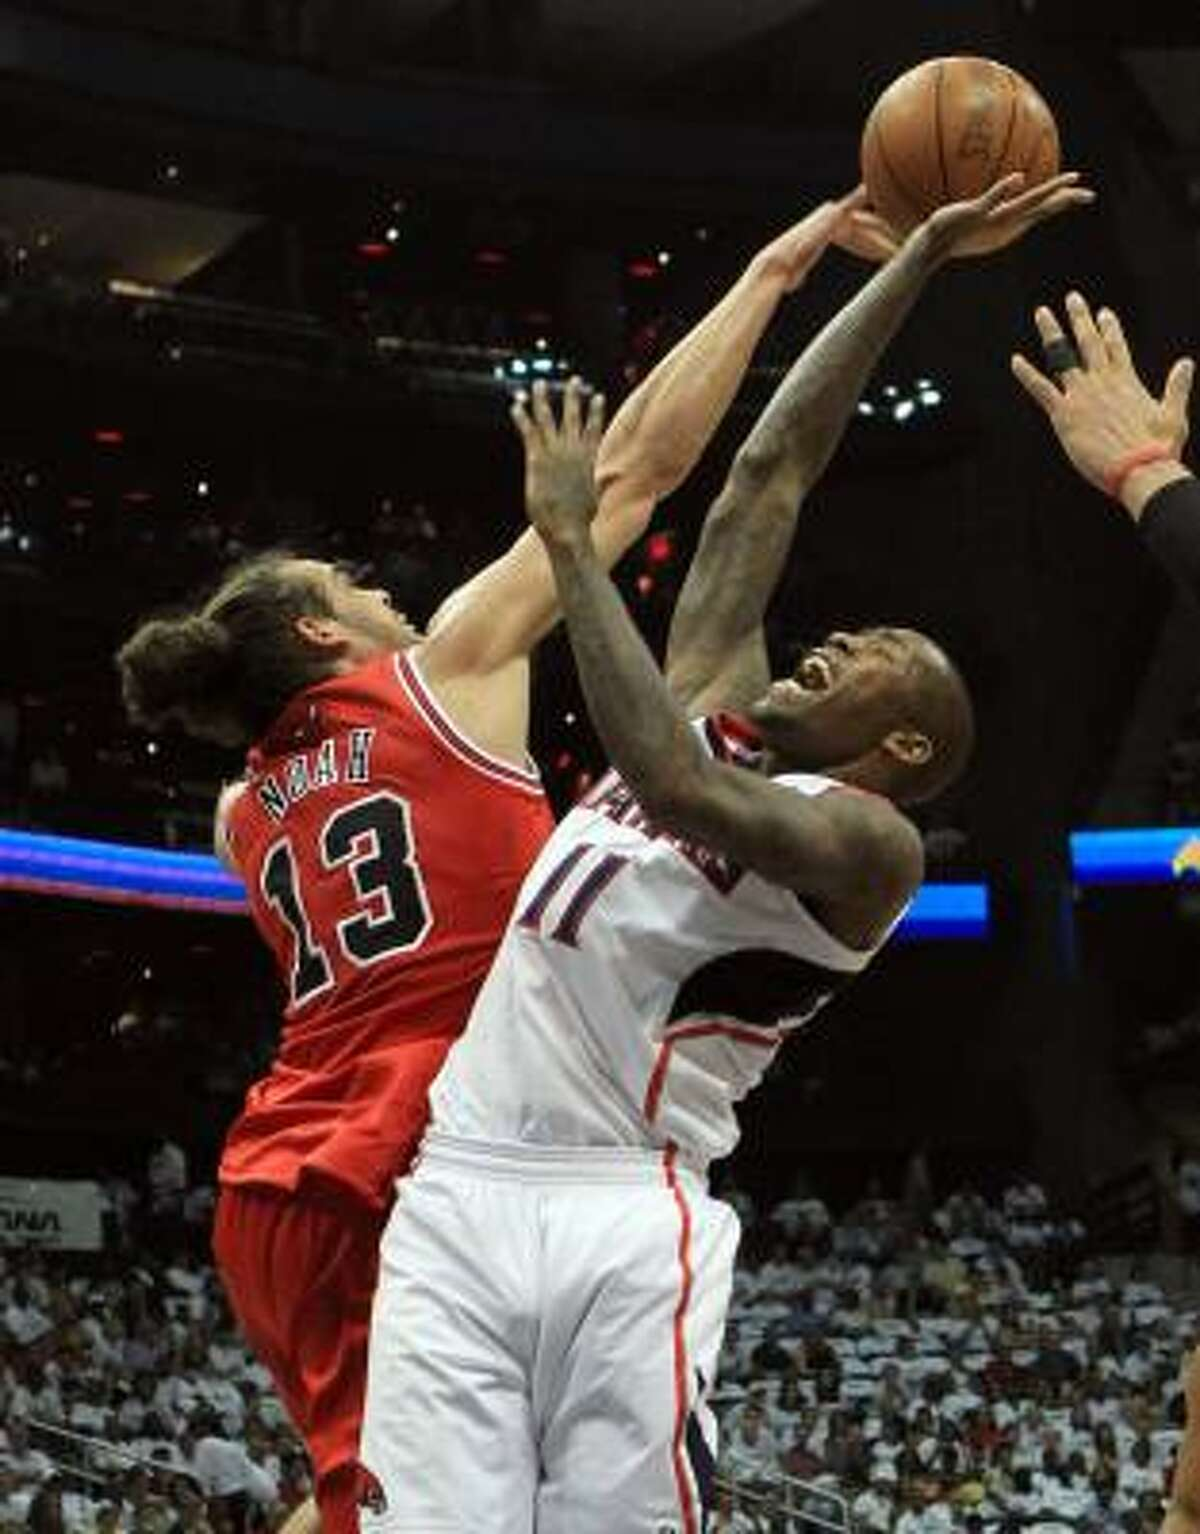 Bulls center Joakim Noah (13) blocks a shot by Hawks guard Jamal Crawford during first-half action.